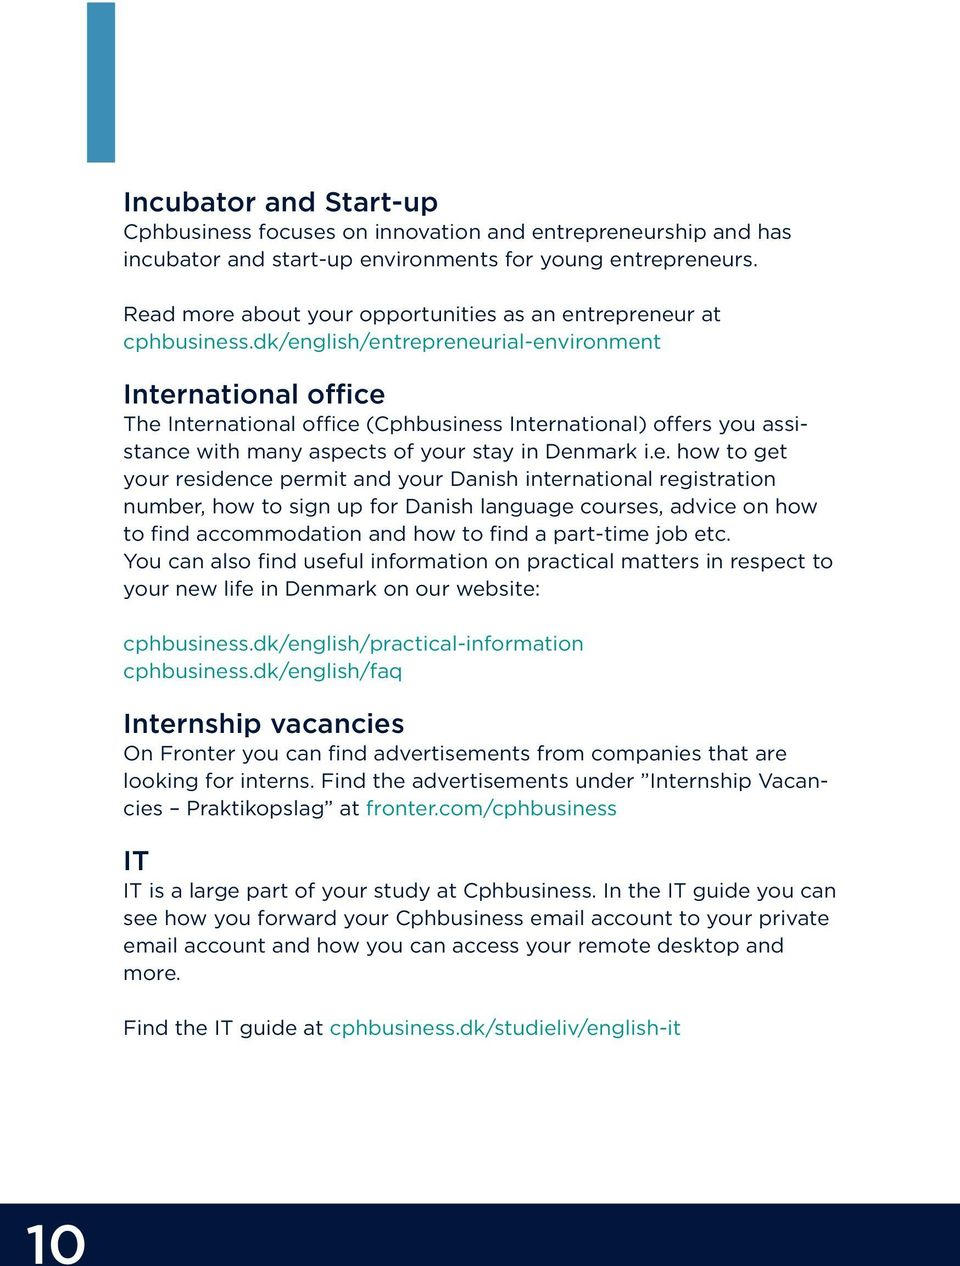 dk/english/entrepreneurial-environment International office The International office (Cphbusiness International) offers you assistance with many aspects of your stay in Denmark i.e. how to get your